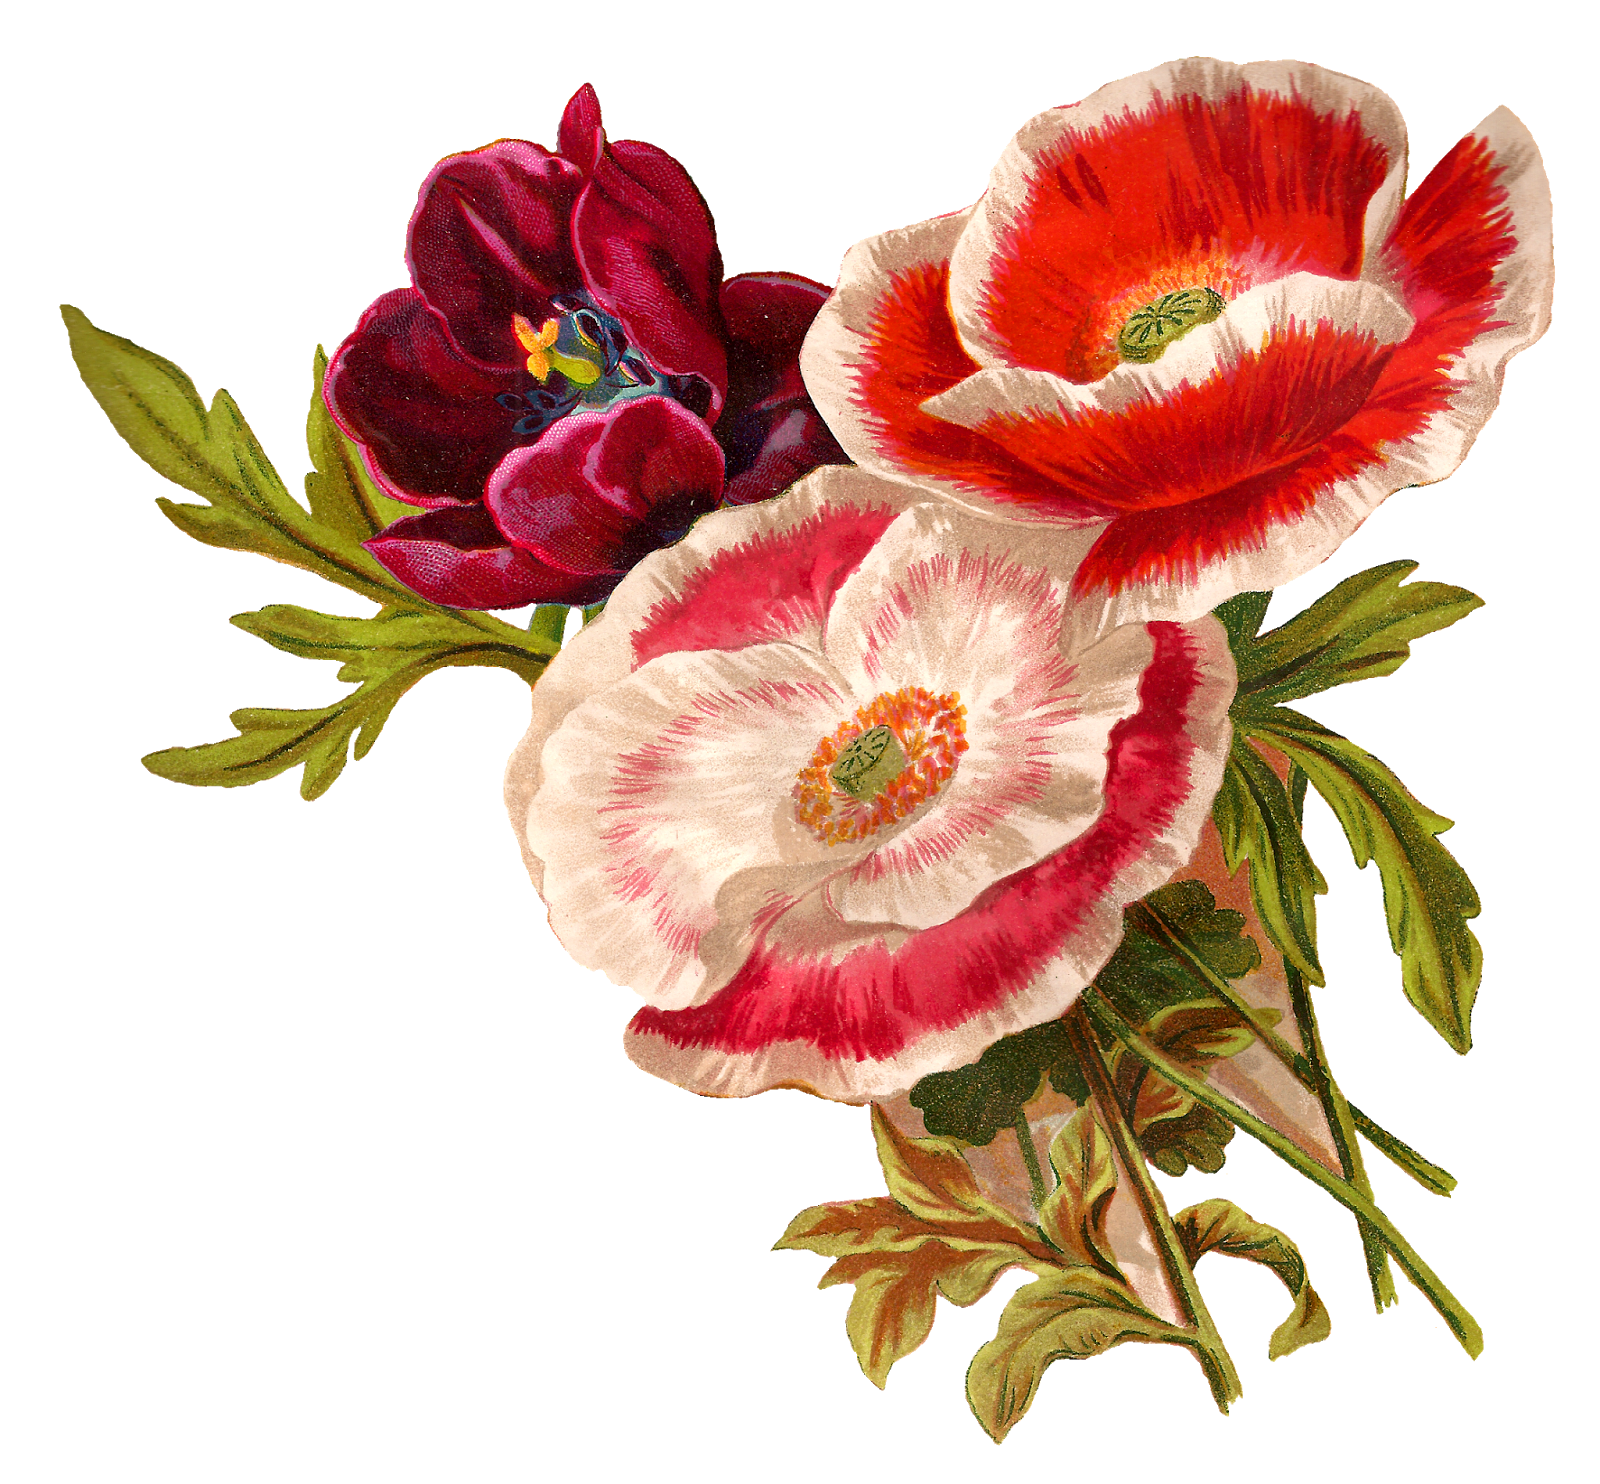 Antique images vintage clip. Poppy clipart poppy flower